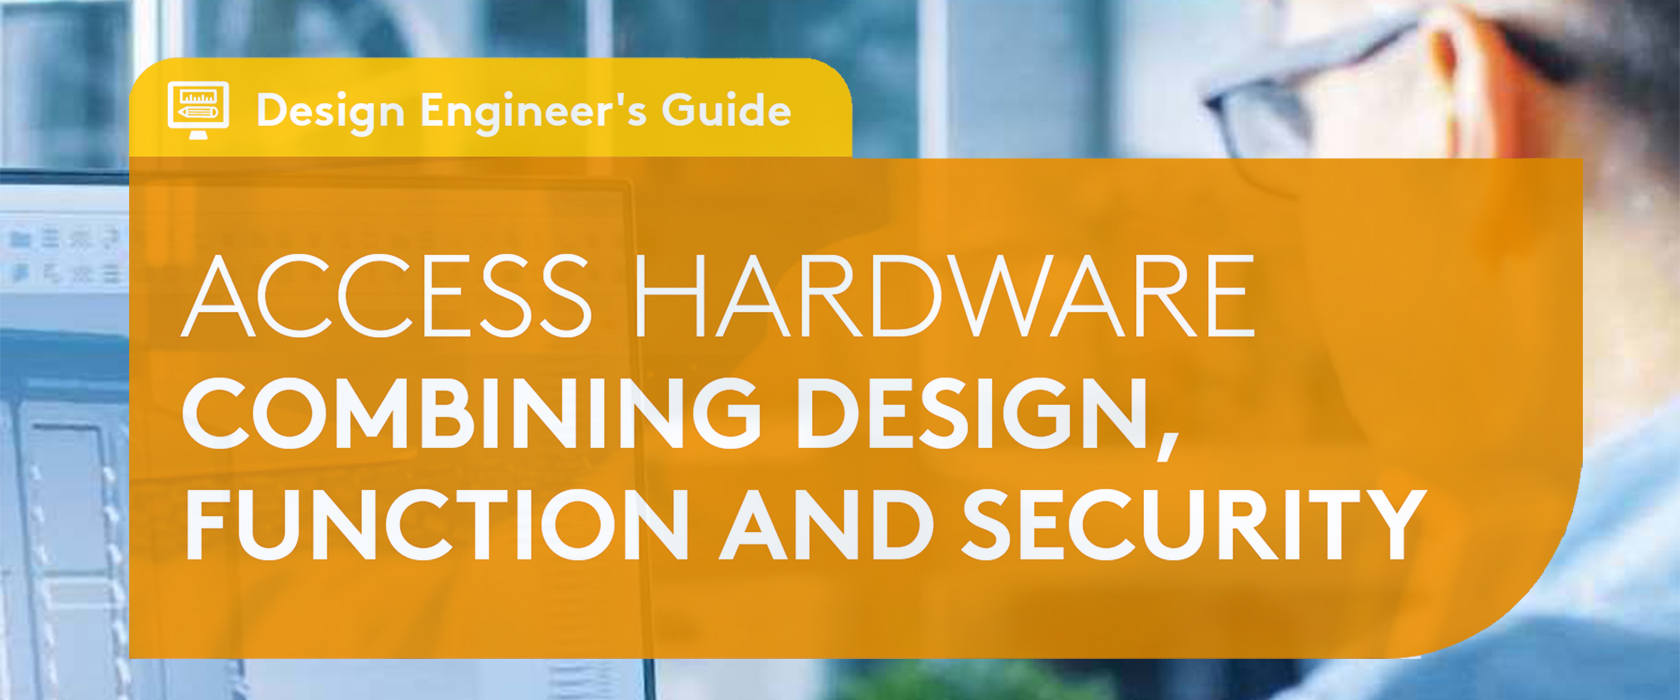 Design Engineer's Guide to Access Hardware